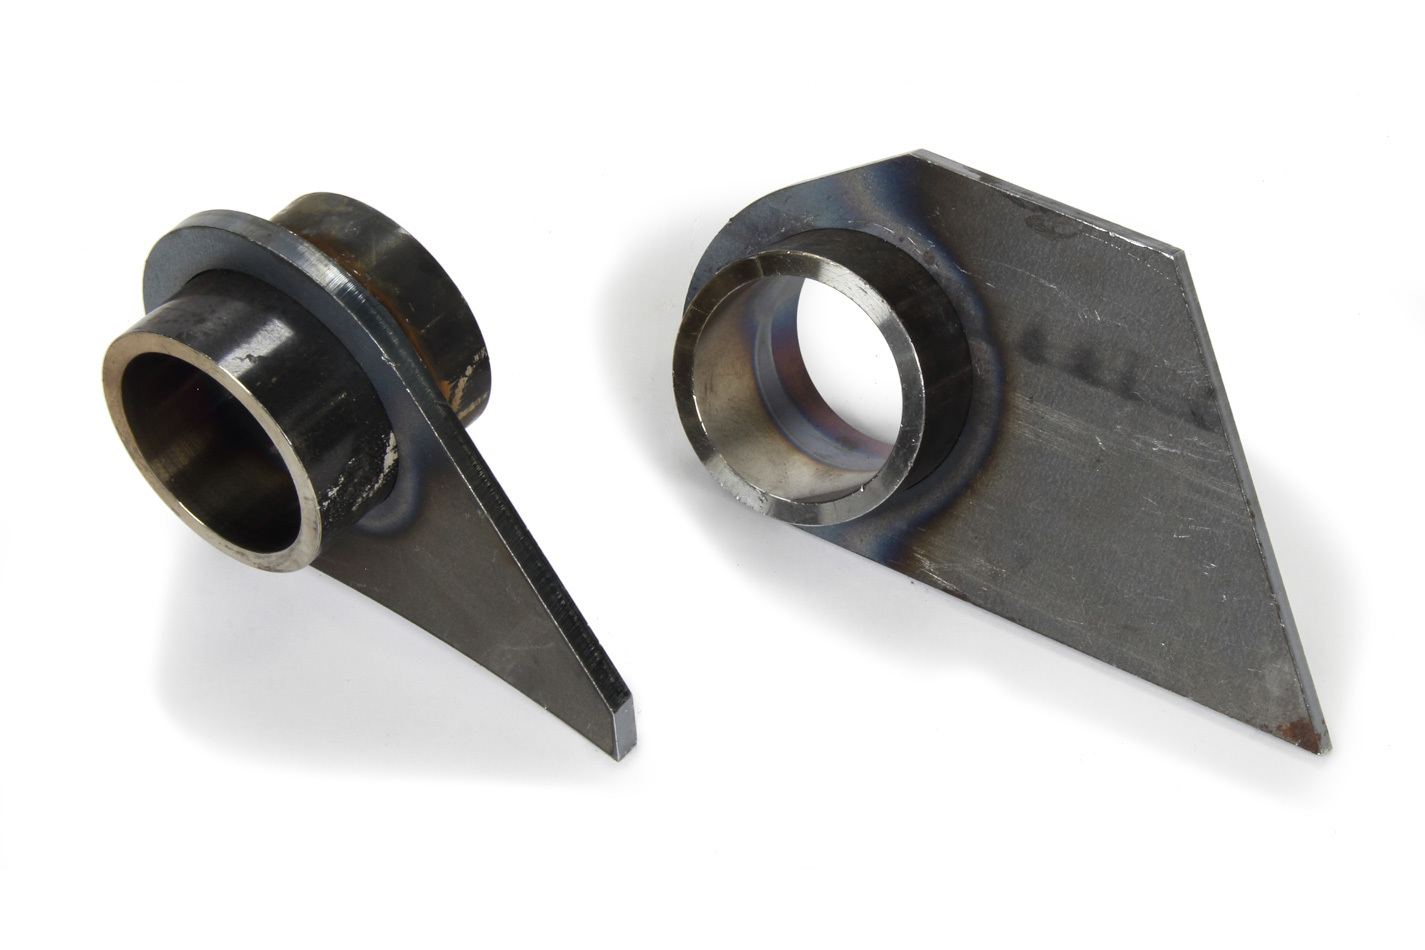 PEM HMBUSET Trailing Arm Bracket, Rear, Upper, Weld-On, Steel, Natural, GM Metric, Pair